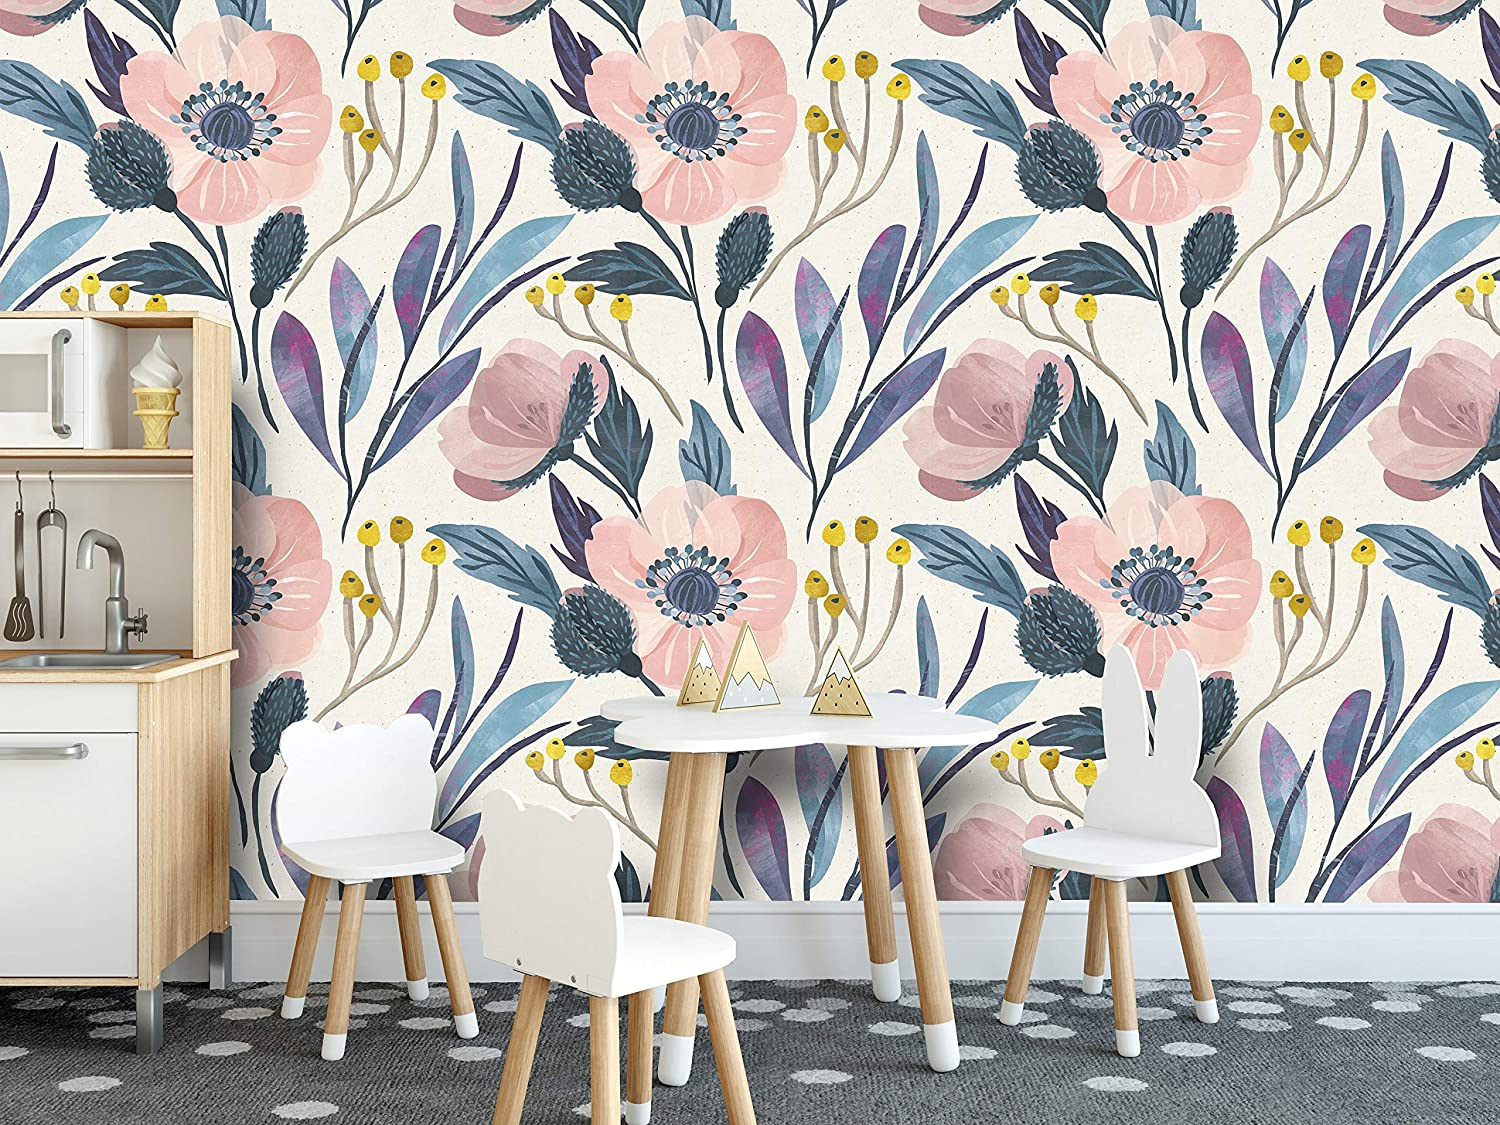 Watercolor Wallpaper Floral Wall Decor Temporary Wallpaper Nightengale Wallpaper Peel and Stick Forest Decor Hand Painted Wallpaper